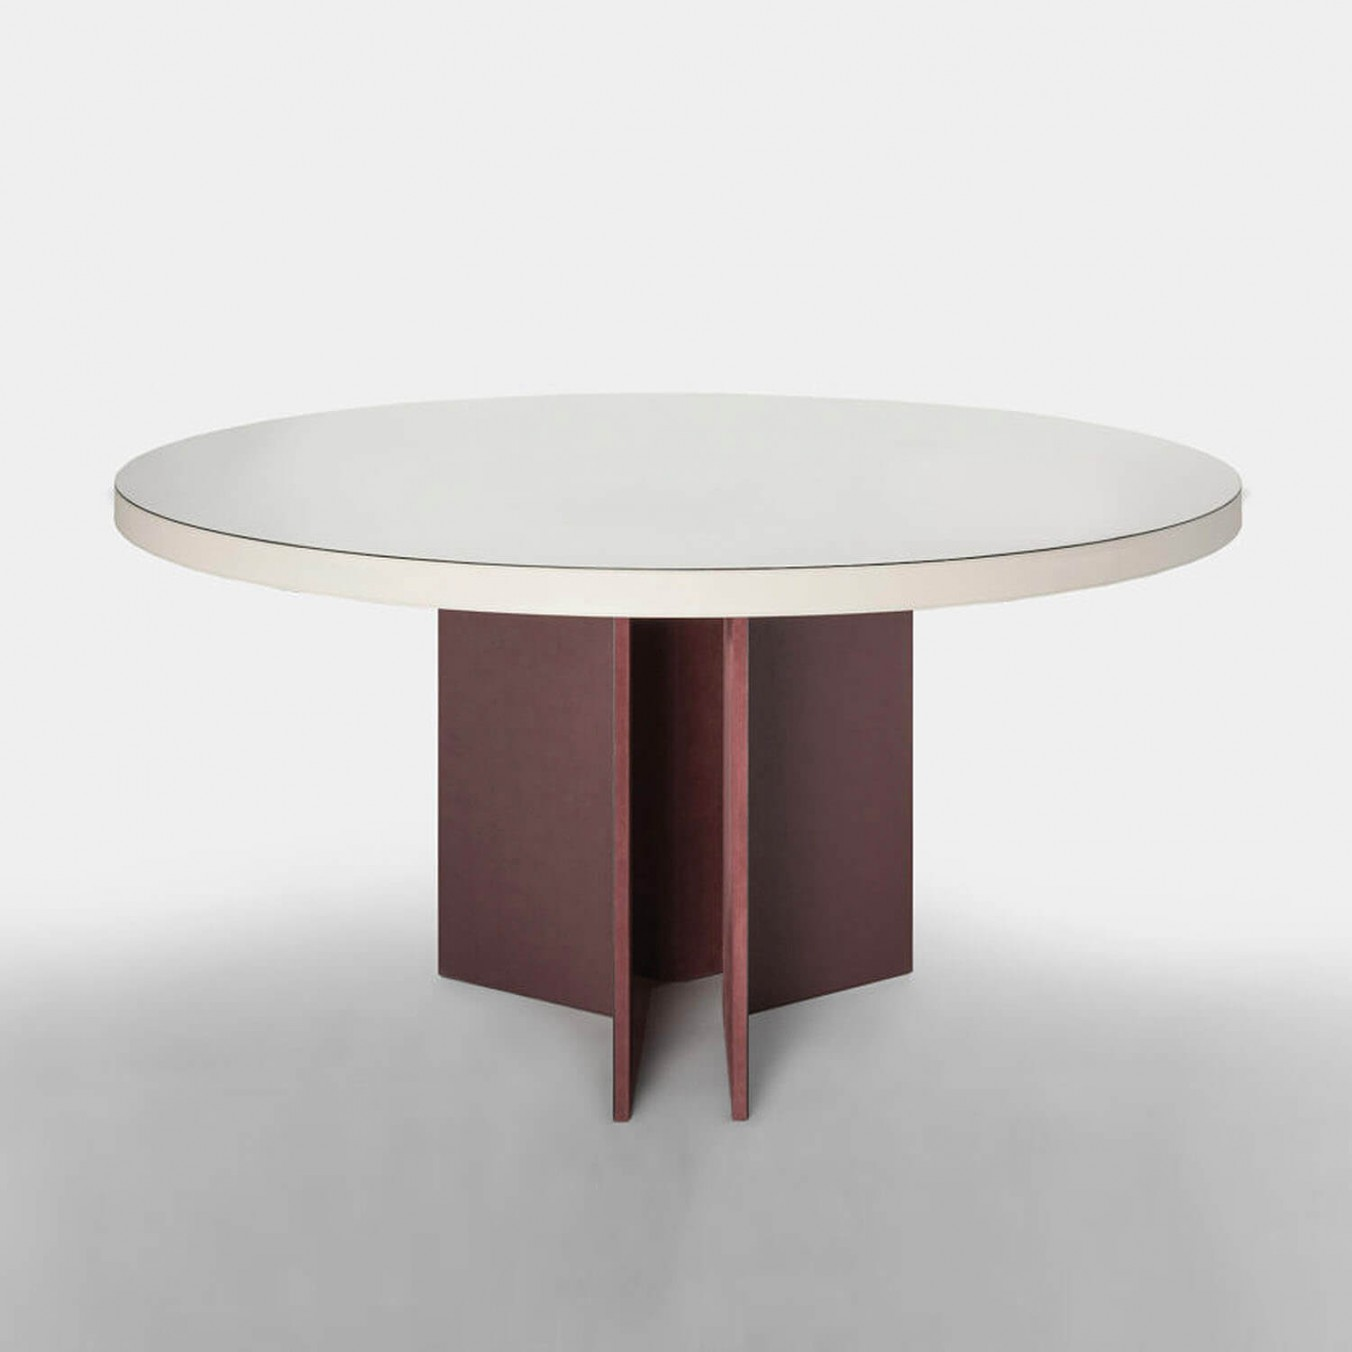 BIVIO ROUND TABLE